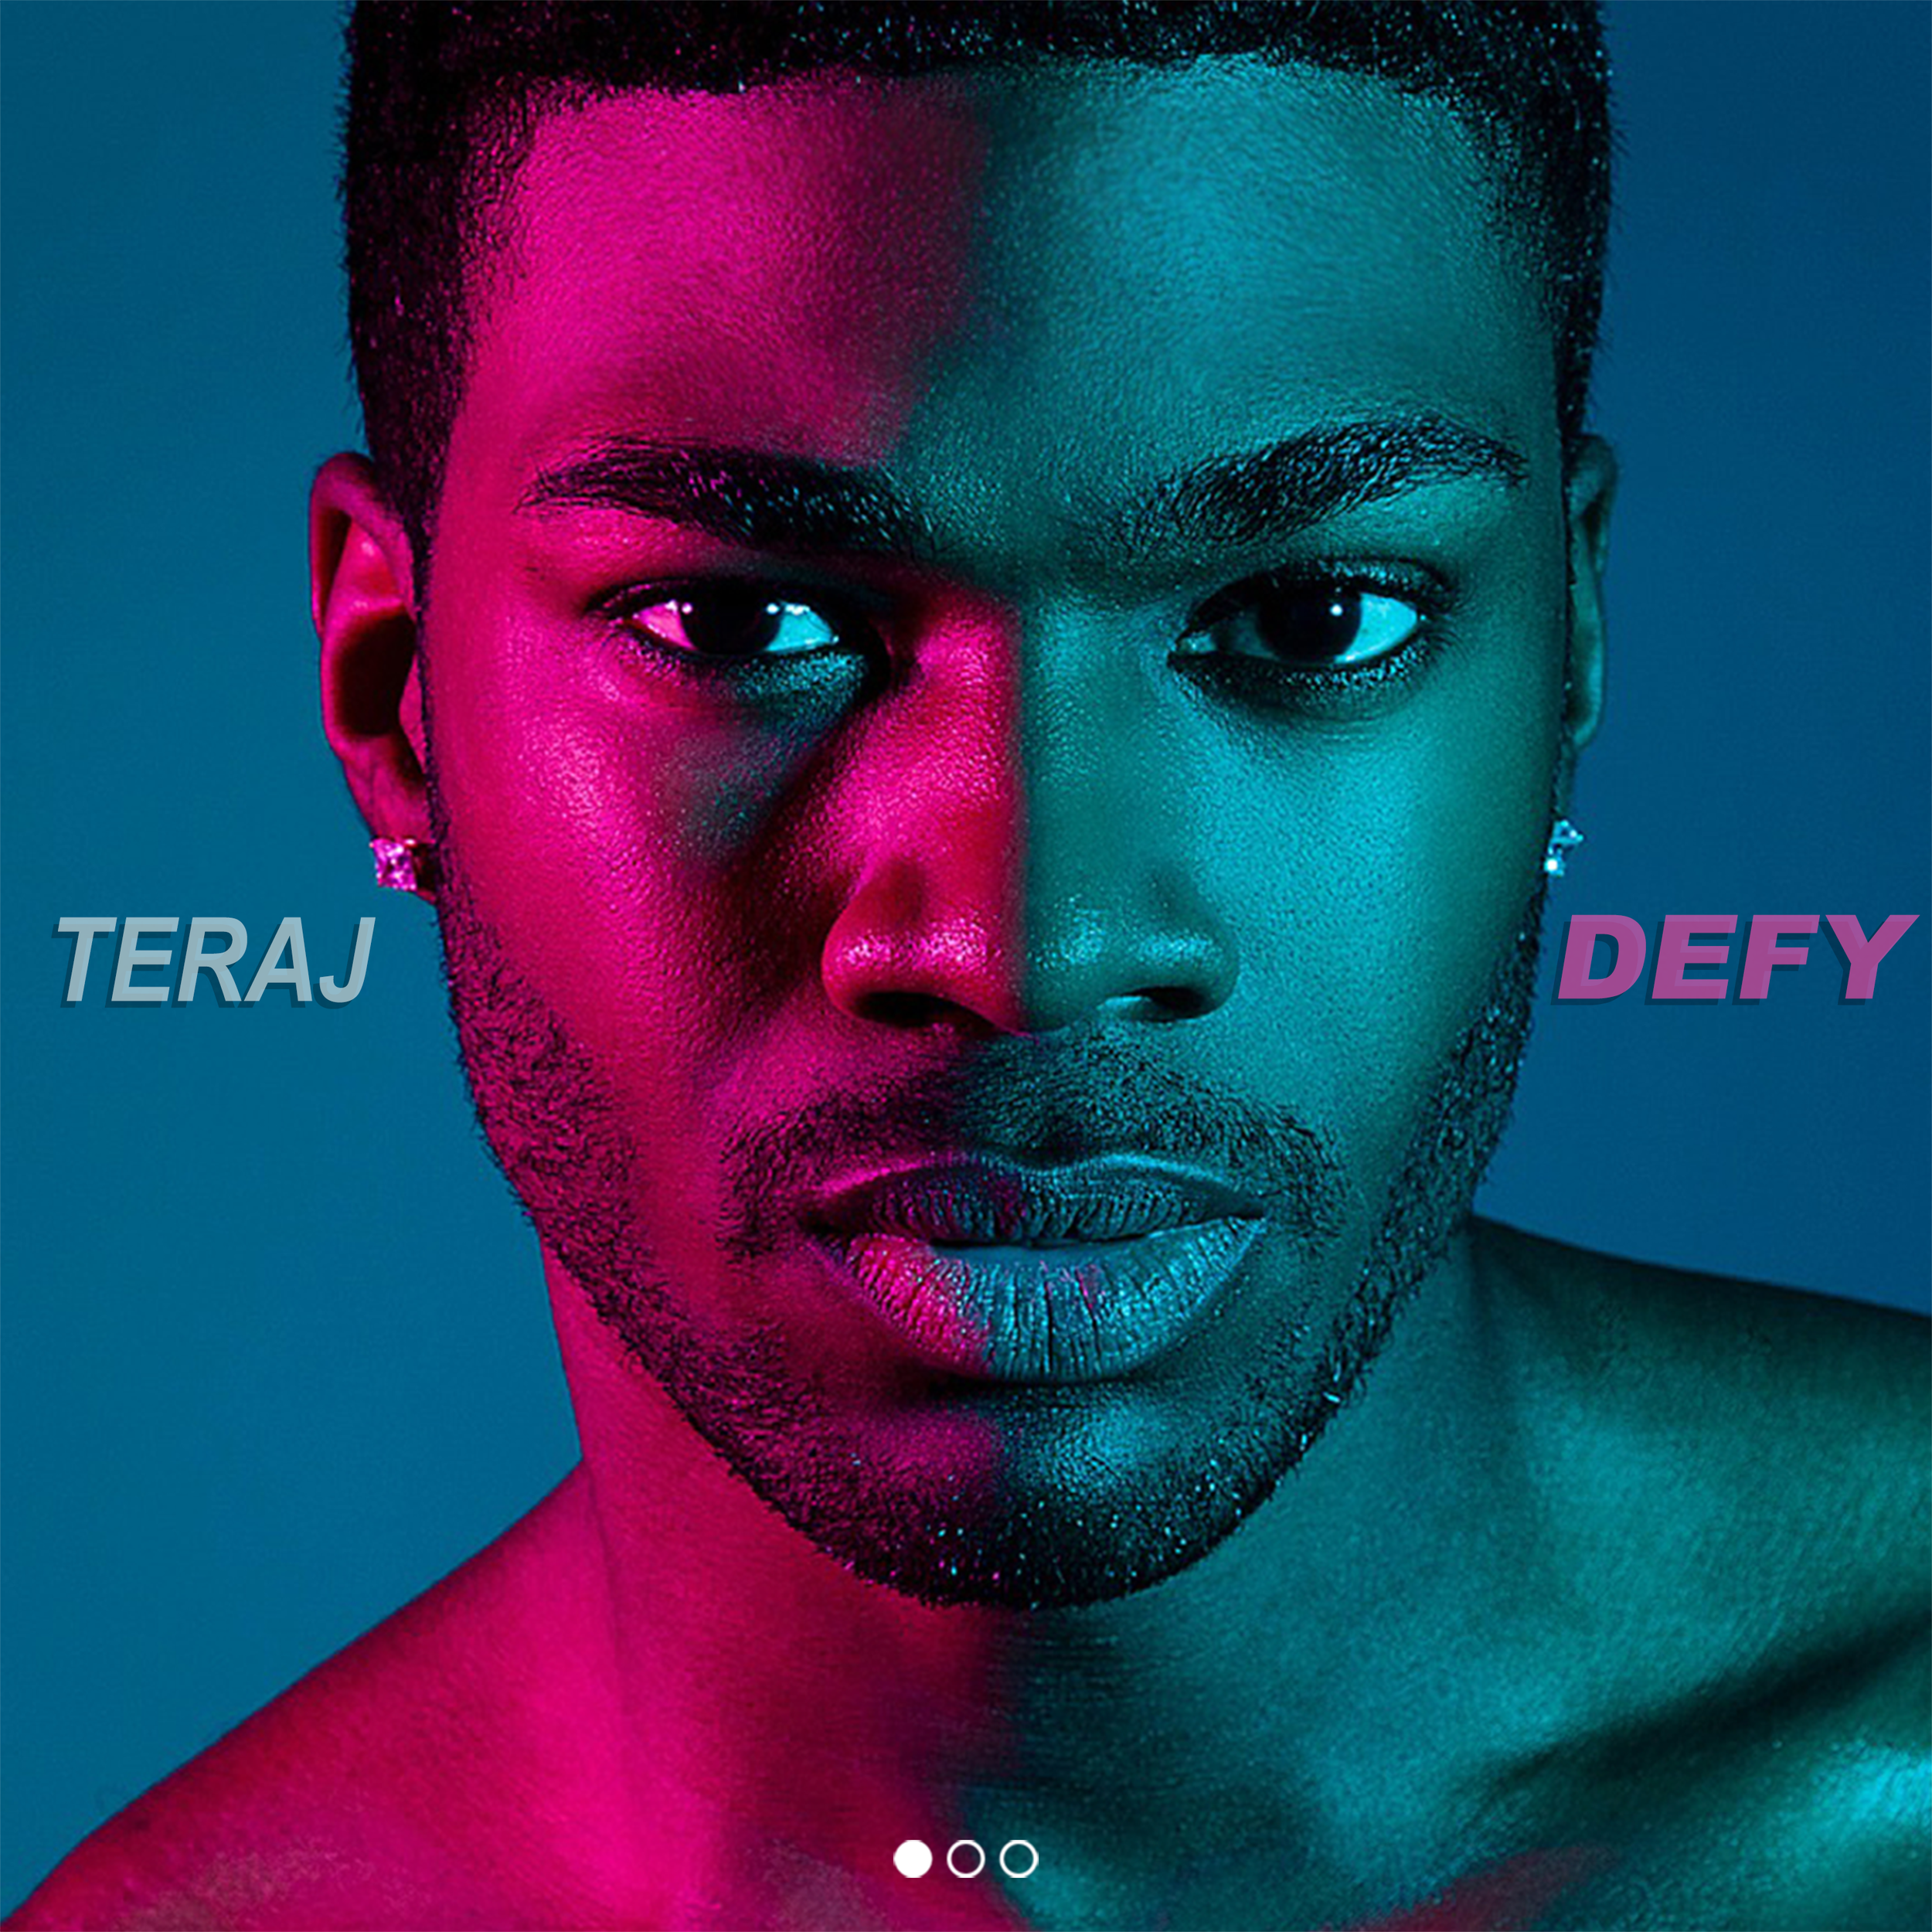 - Monday, April 9, 2018: New York, NY – TERAJwill release his highly anticipated debut EP DEFY, Pt. 1on April 27, 2018. Pre-orders available on iTunes and Google Play starting April 15th!http://itunes.apple.com/album/id1369256165?ls=1&app=itunesProduced by Danny Bobby, Vezzo and Teraj, himself,DEFY, Pt. 1is a fusion of Pop, R&B, and EDM that showcases Teraj's soulful voice, songwriting chops and the creation of his own unique and refreshing sound.